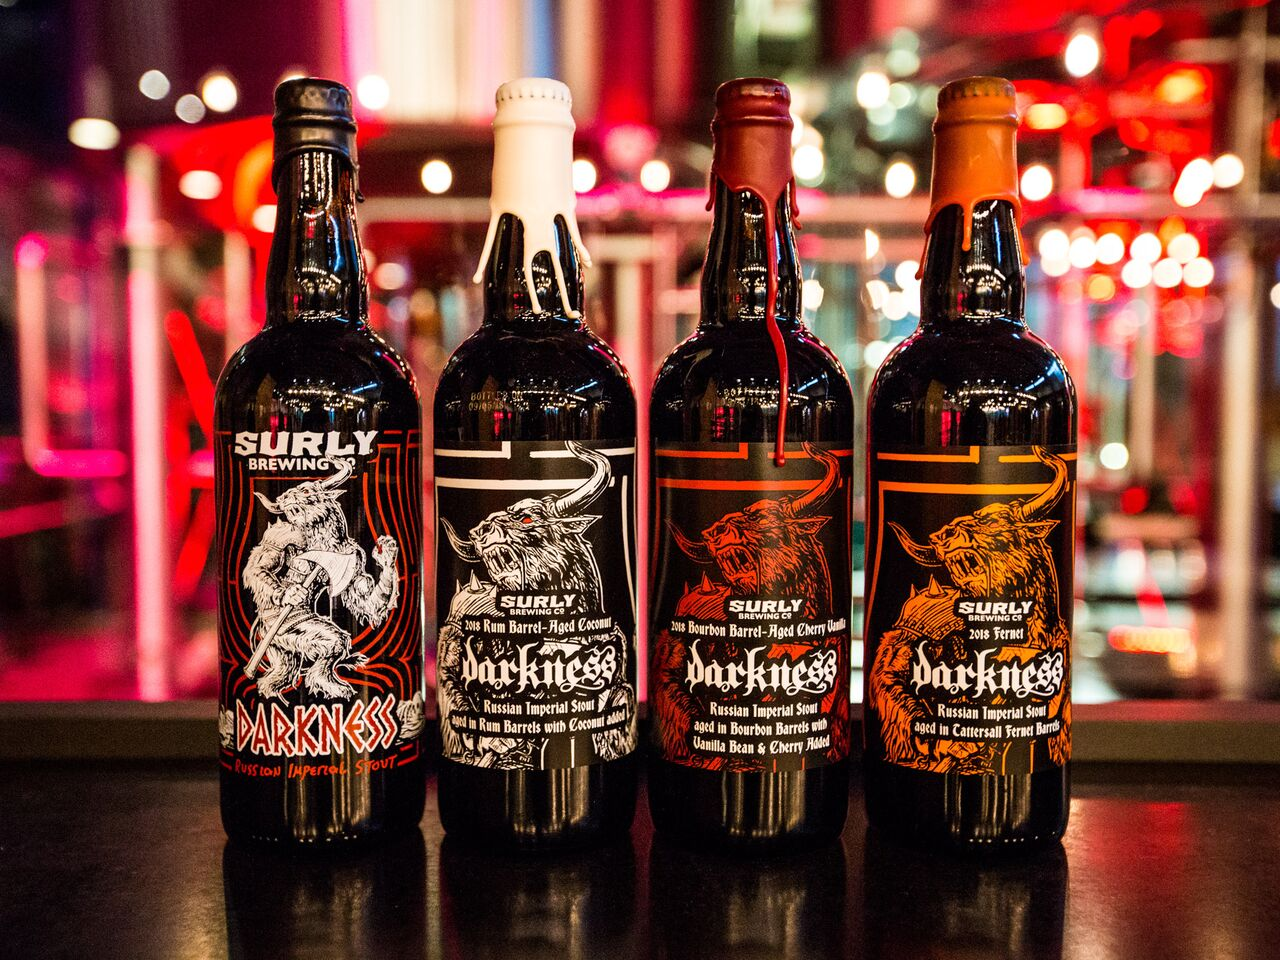 The 2018 Surly Darkness and Darkness variants // Photo courtesy Surly Brewing Company